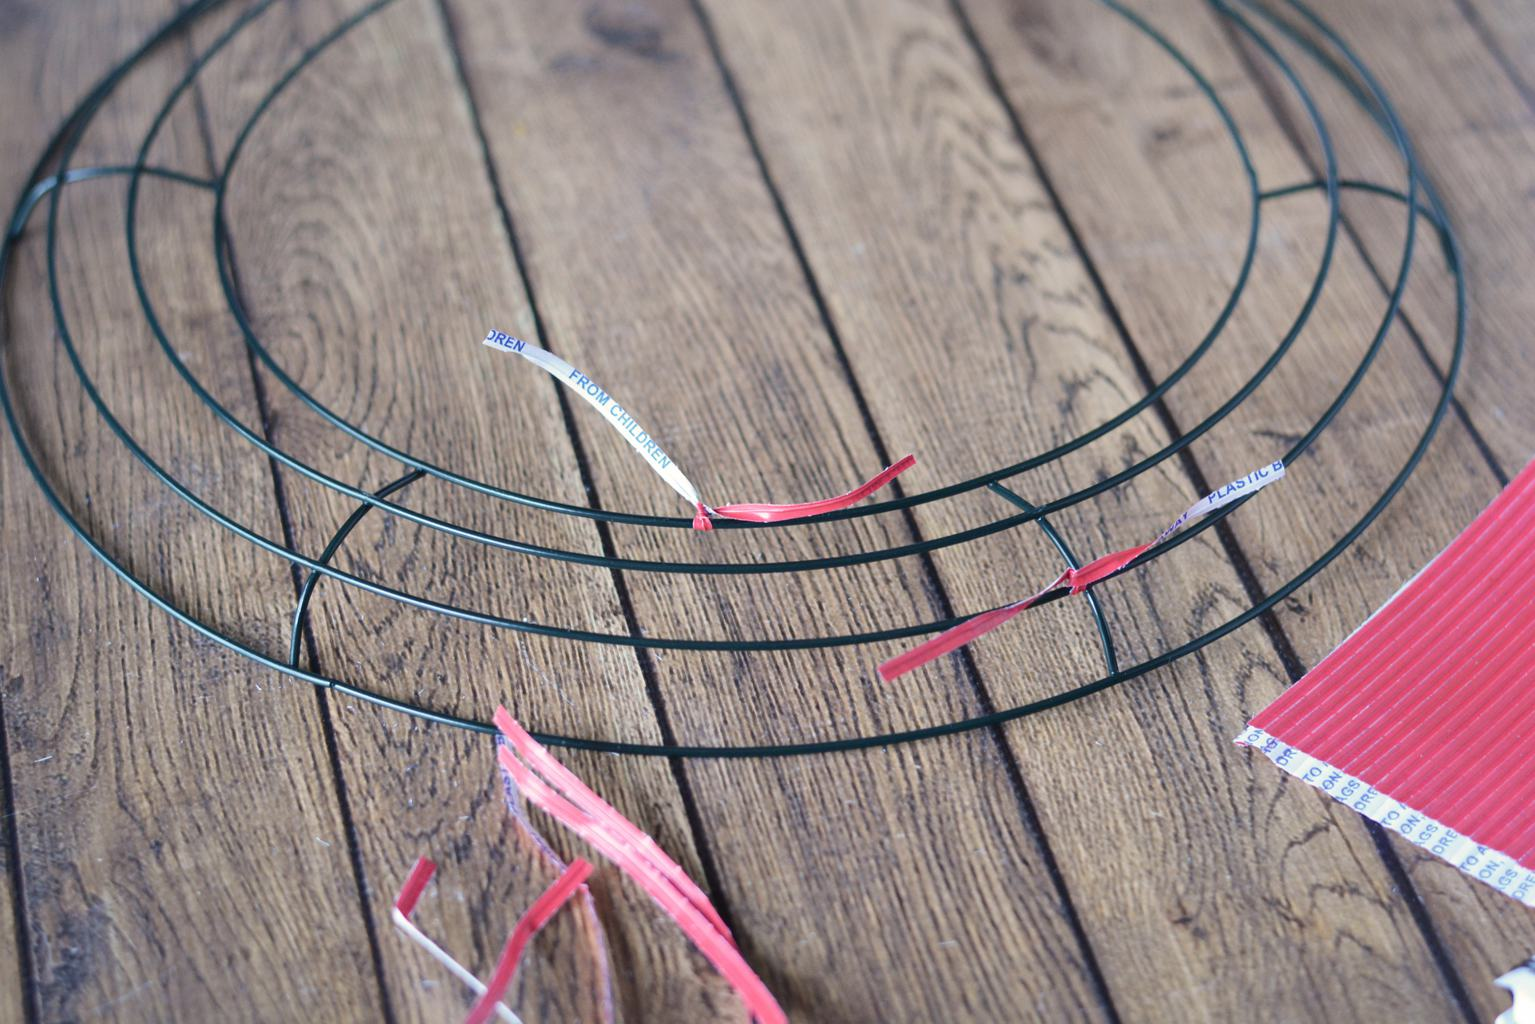 How To Make Deco Mesh Wreaths Step By Intructions Wiring Add Twist Ties Your Frame Place Them About 3 Apart And Alternate